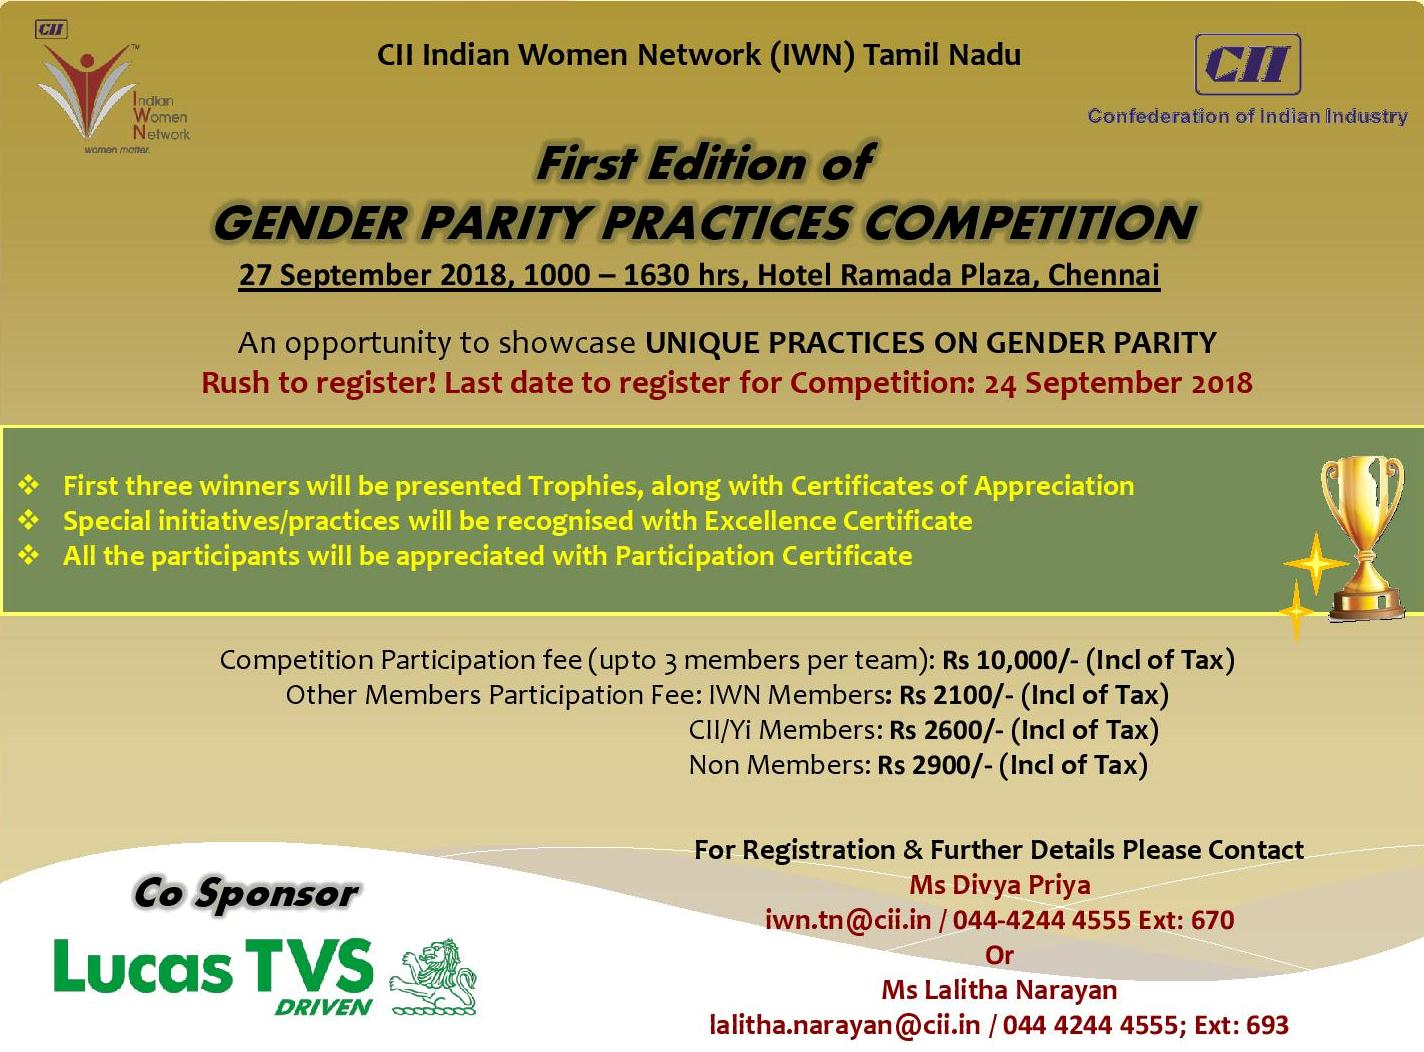 CII-IWN Tamil Nadu First Edition of Gender Parity Practices Competition